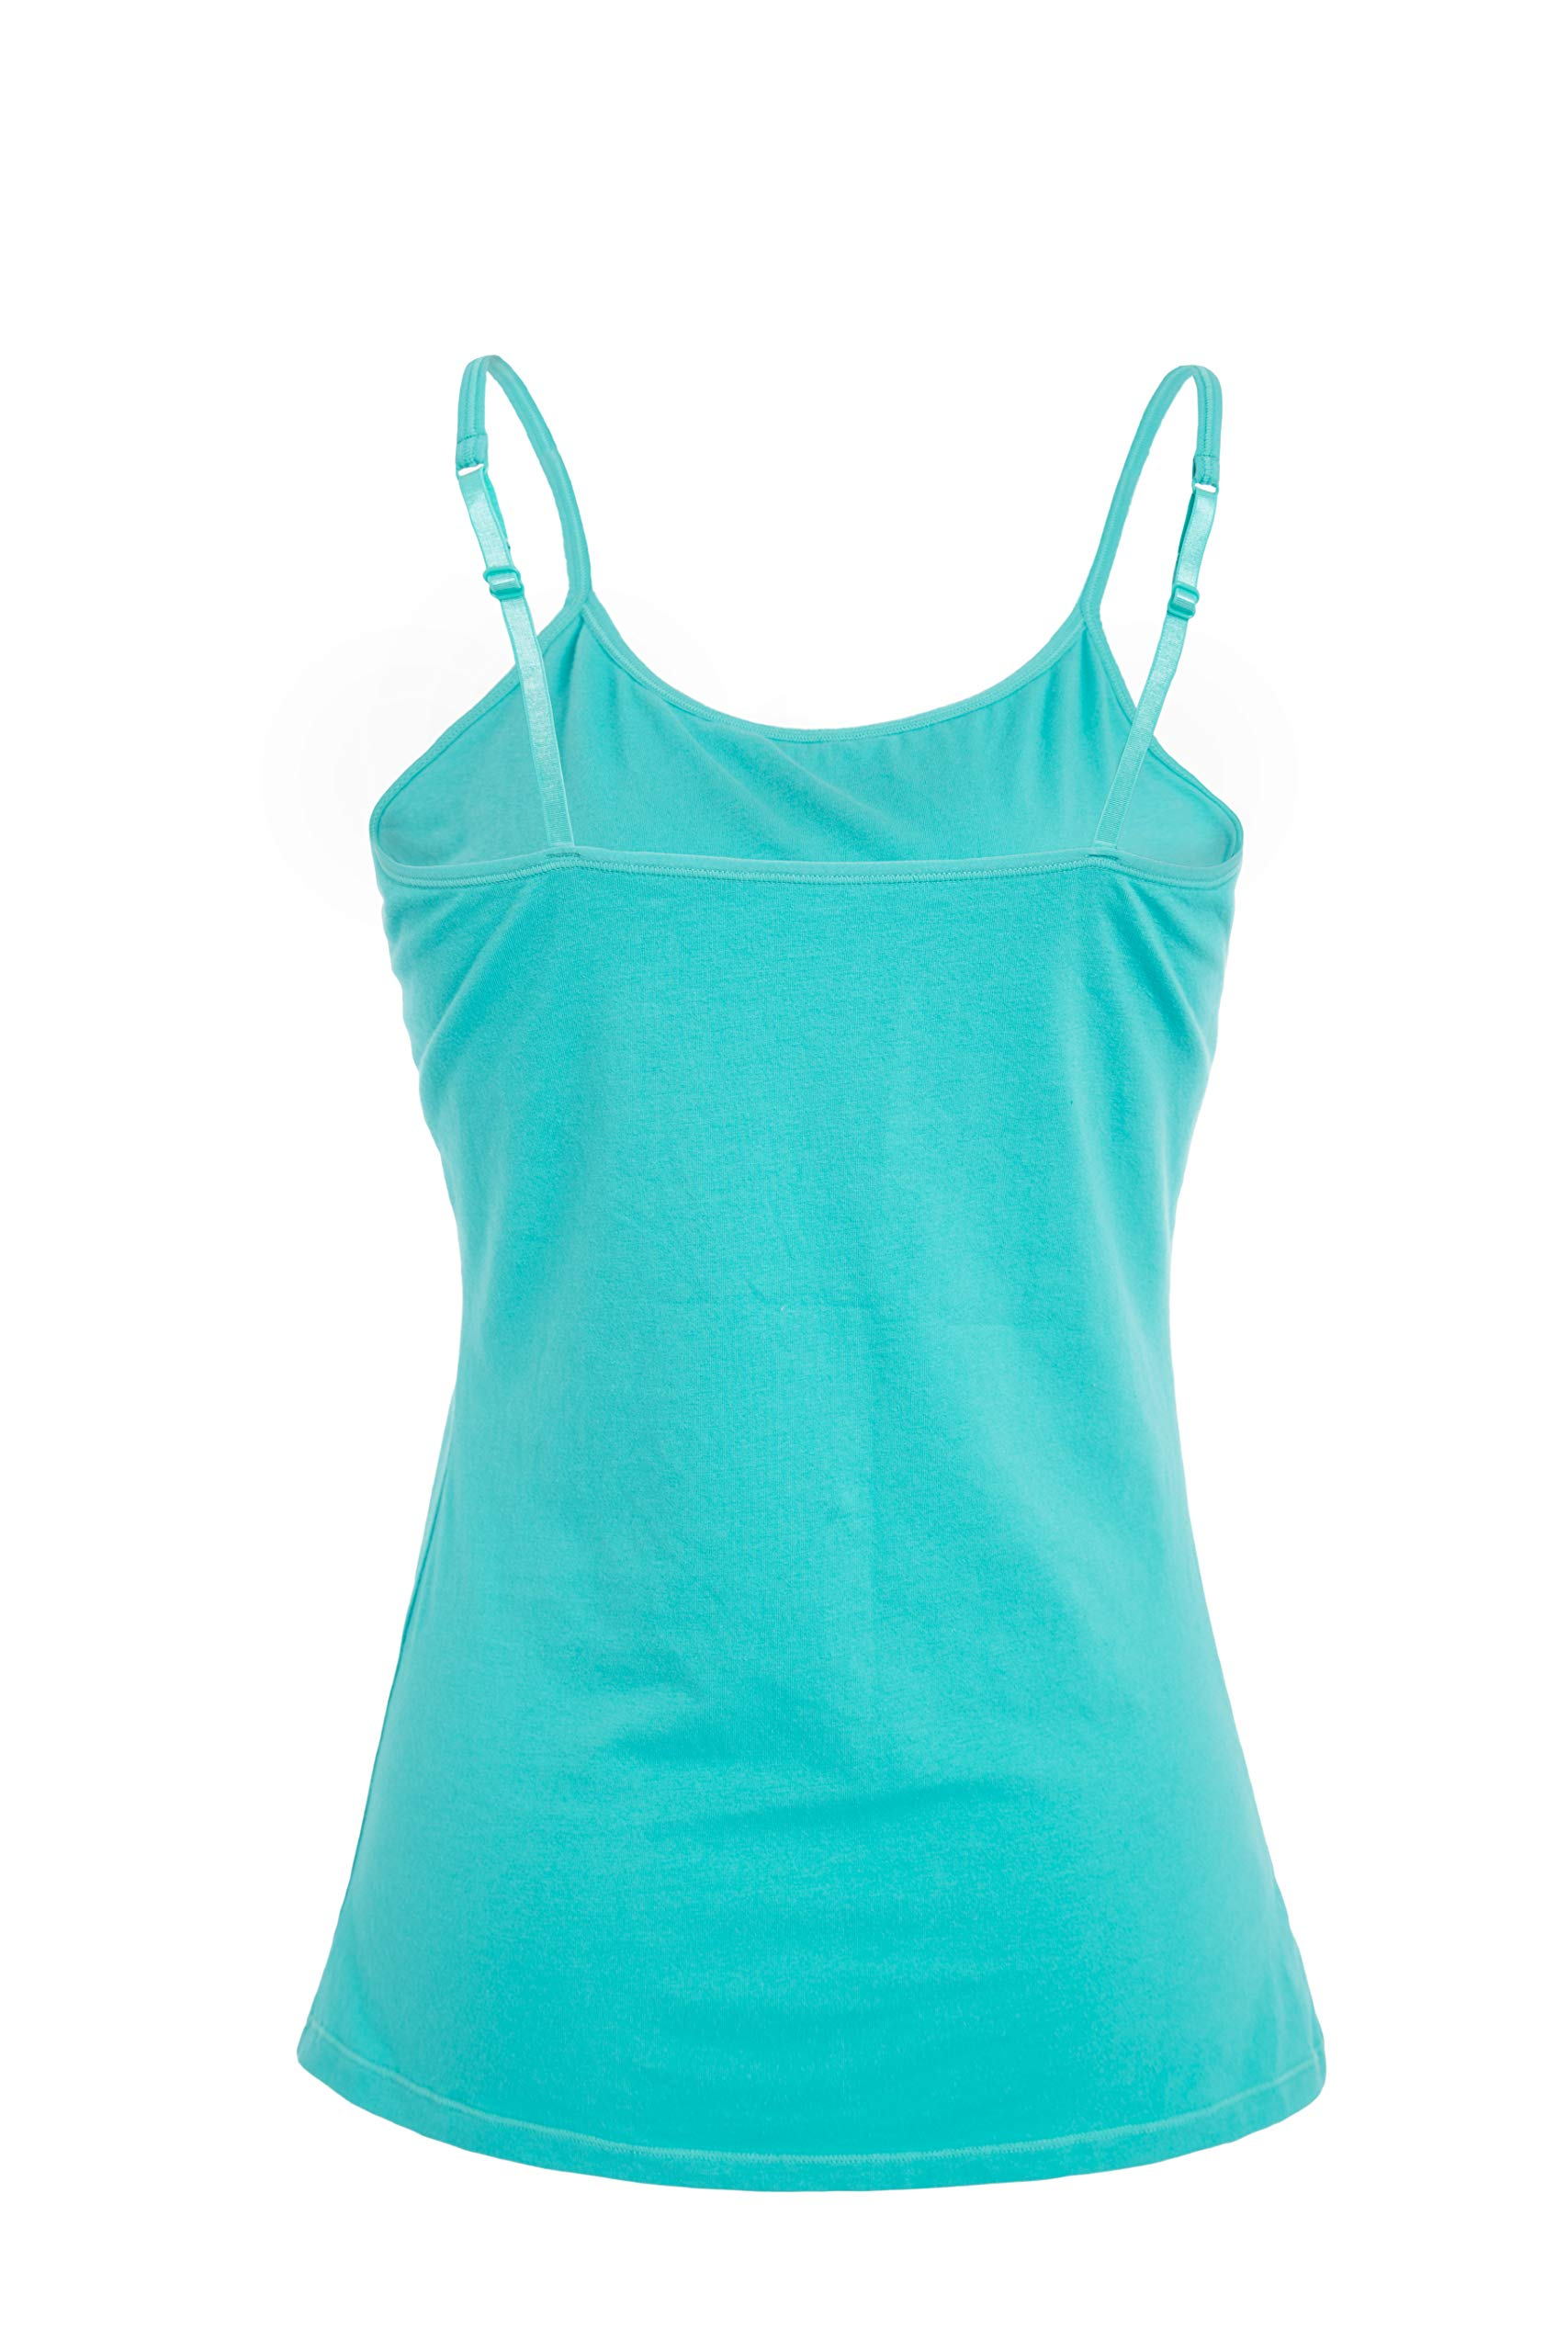 1bd06d62a9aba V FOR CITY Women s Basic Solid Camisole with Shelf Bra Adjustable Spaghetti  Strap Tank Top ...